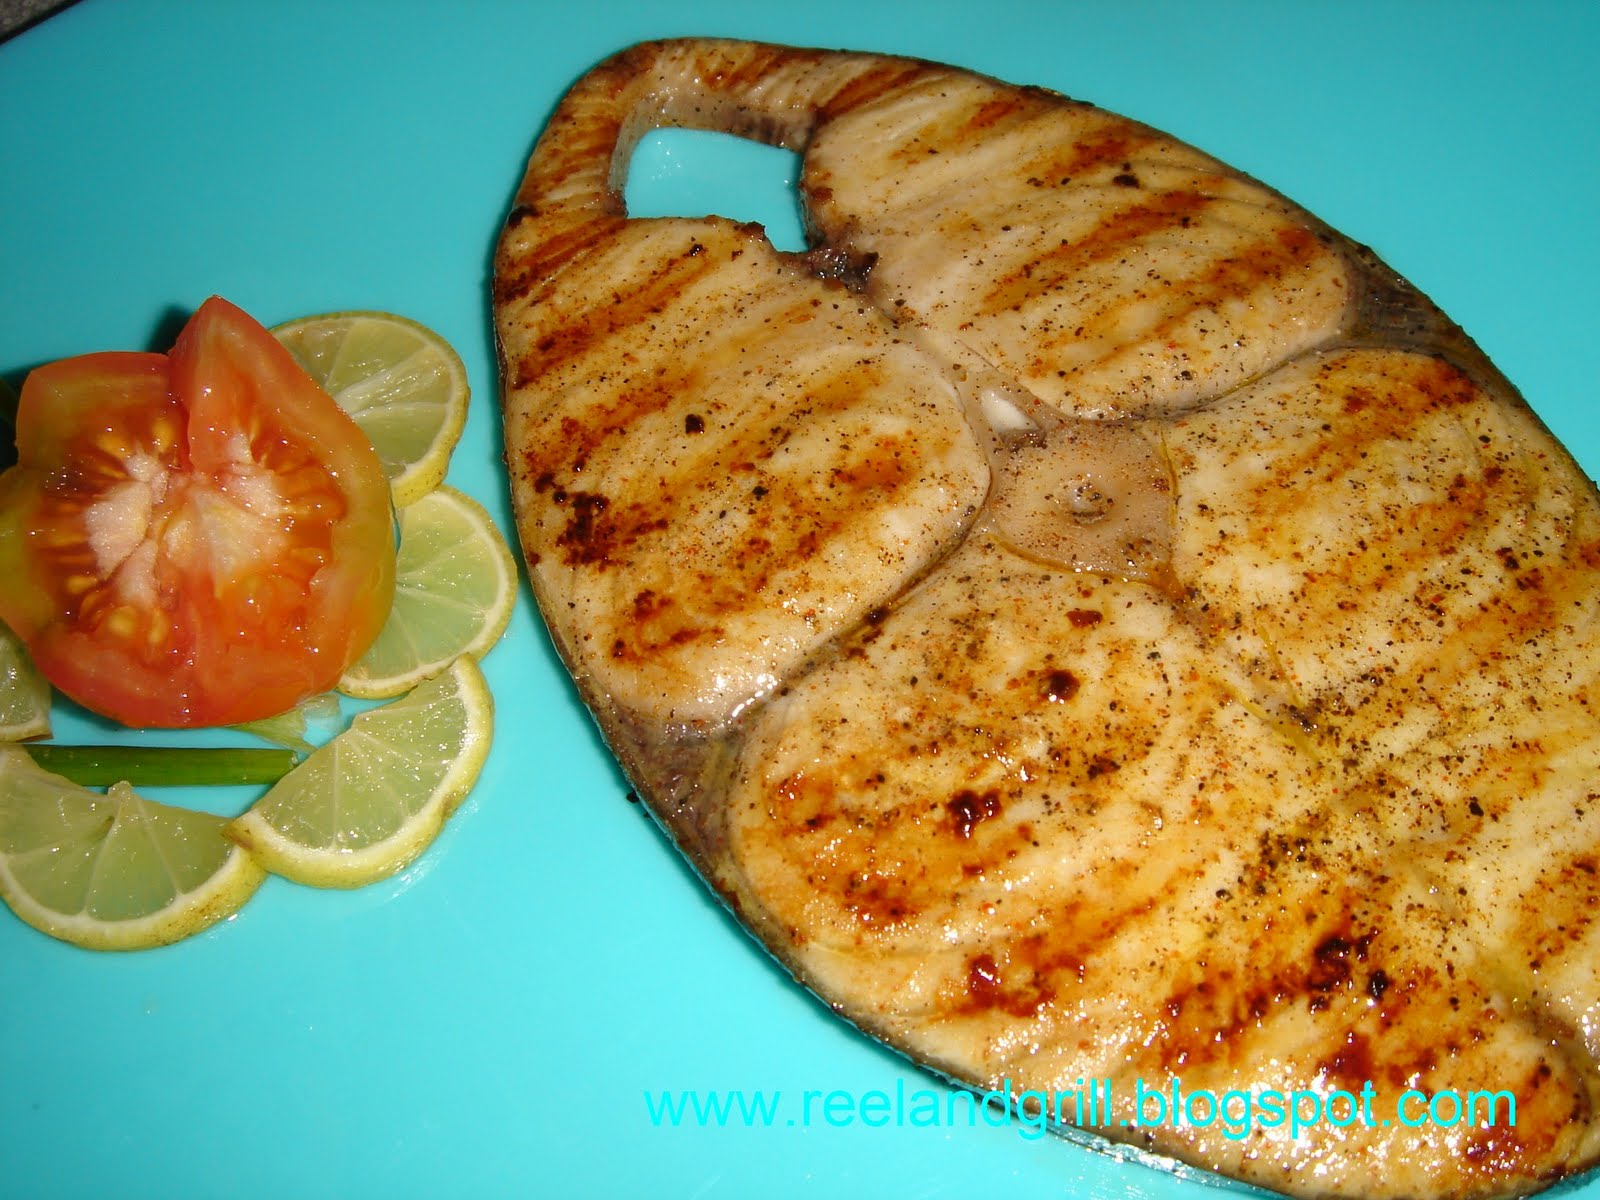 Reel and Grill: Tanigue Steak (Seer Fish Steak)